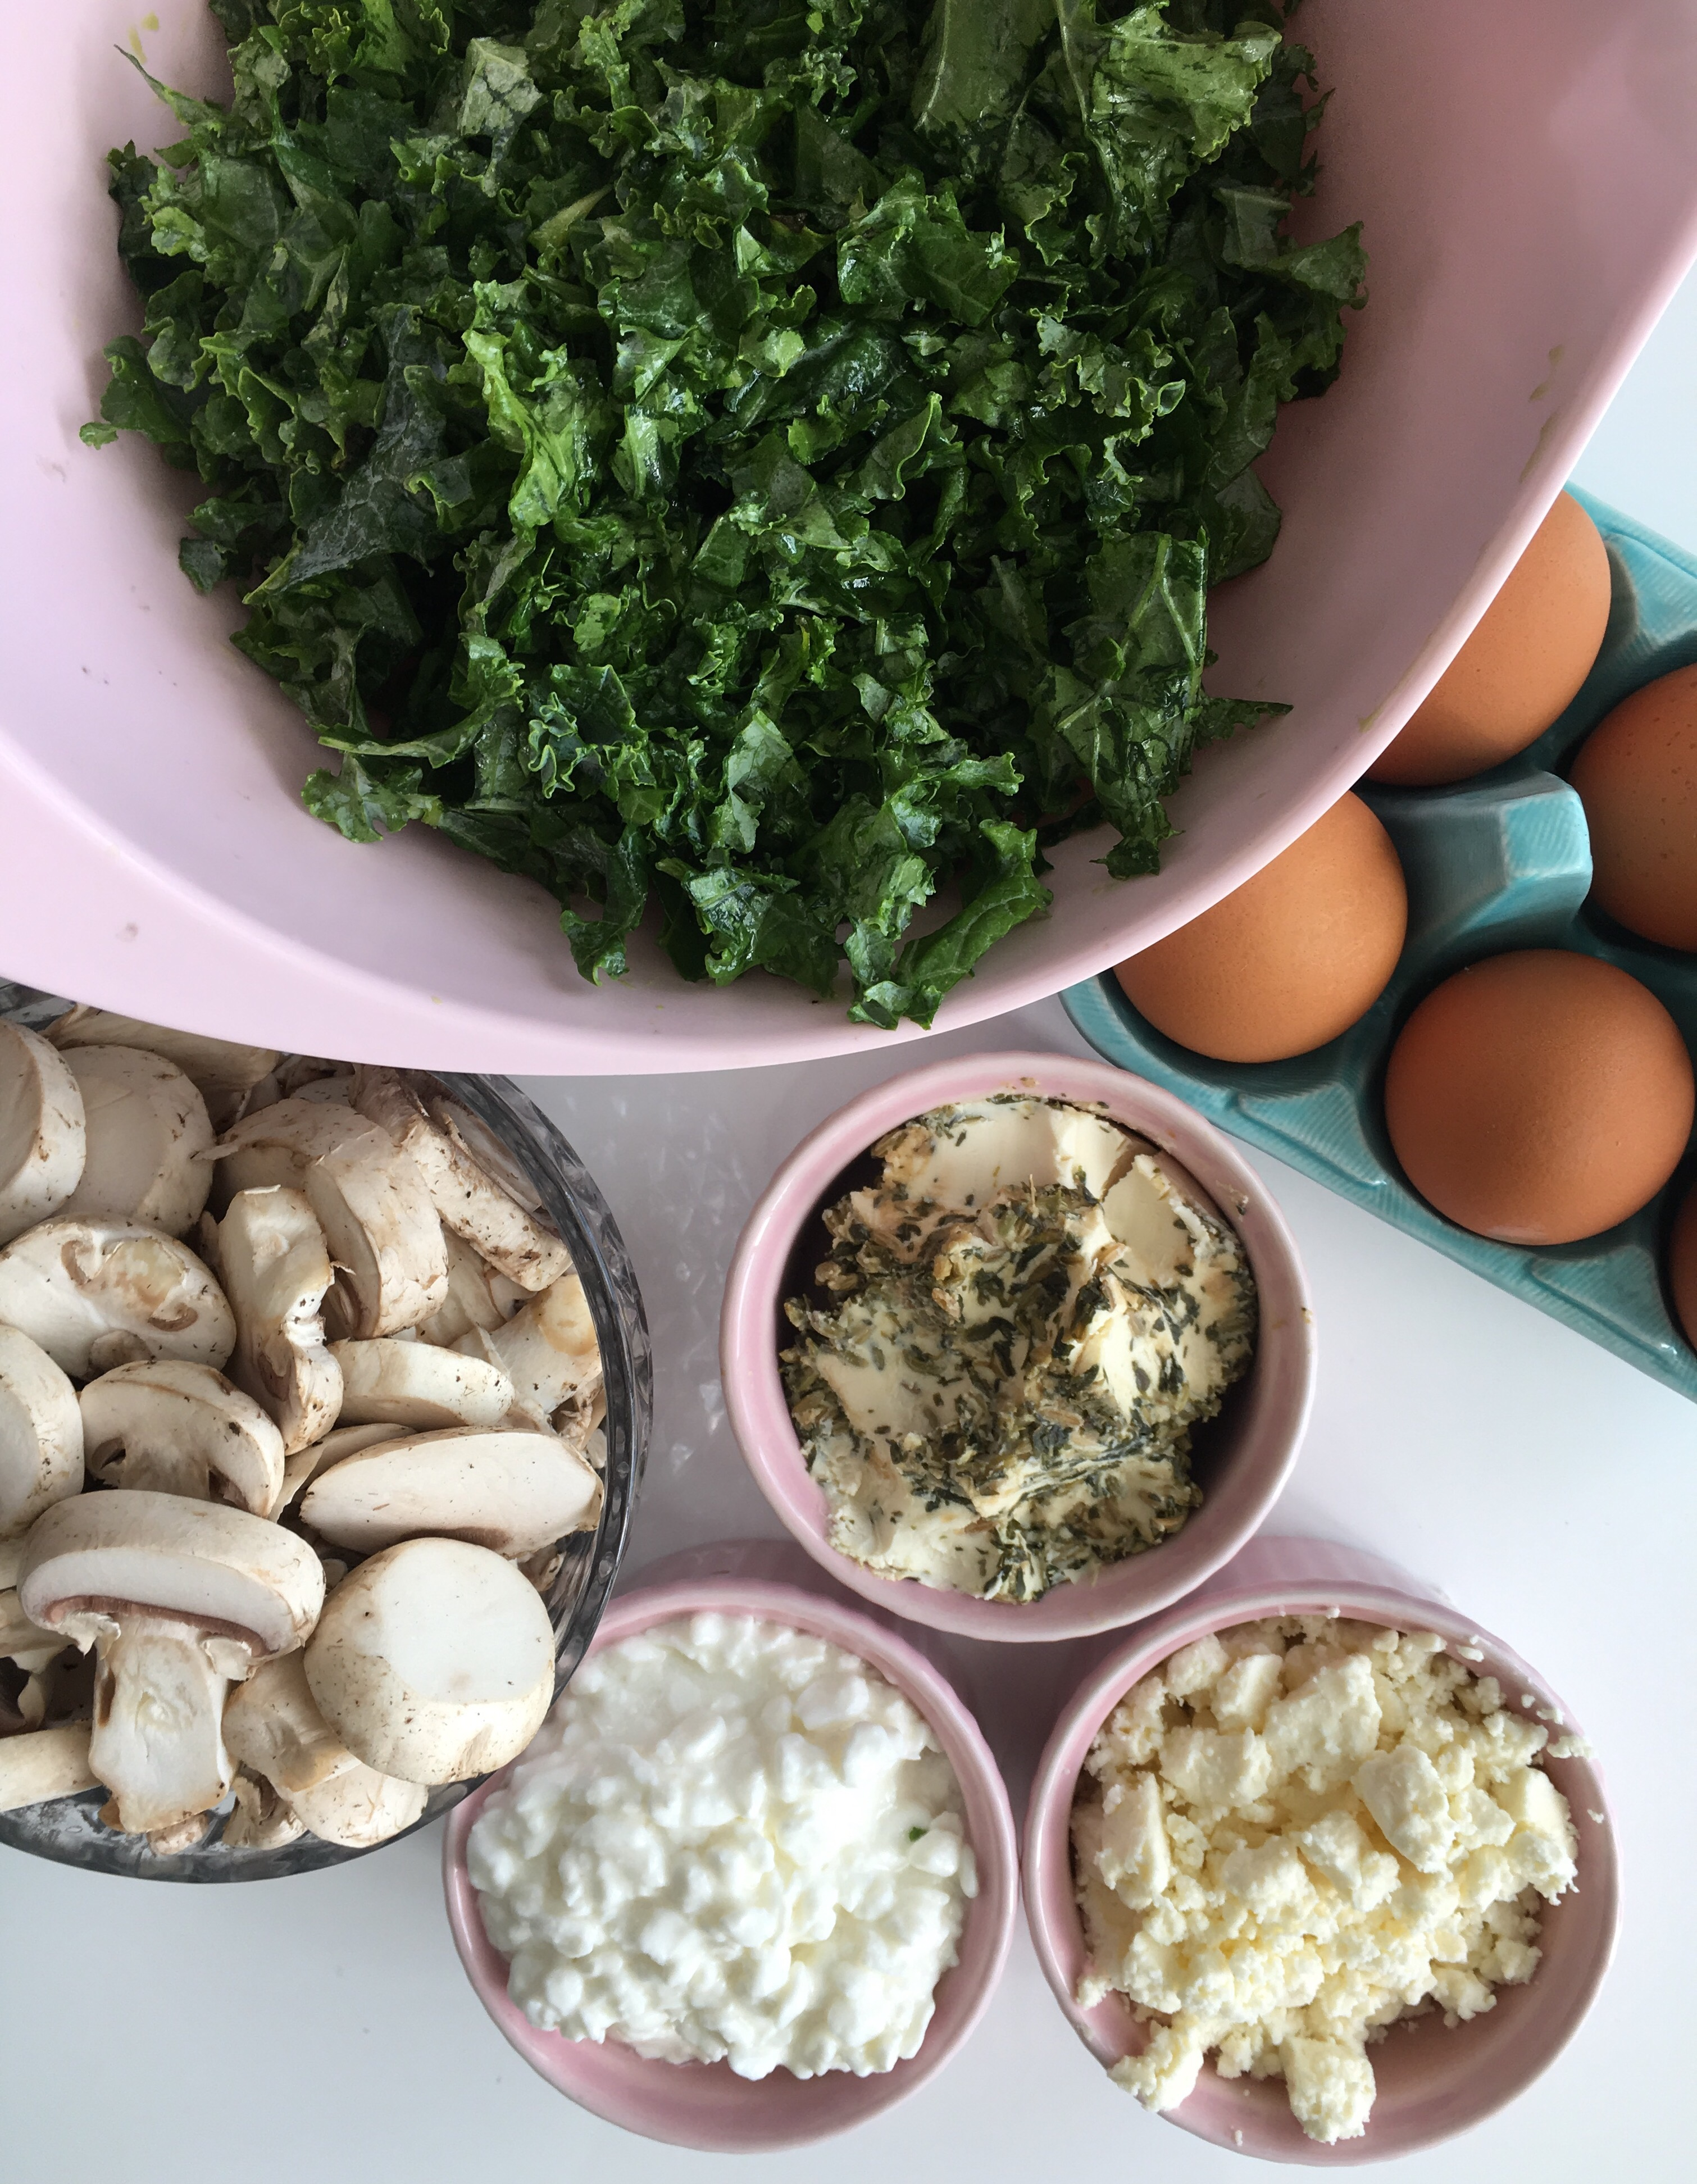 Ingredients for Gluten-Free Quiche